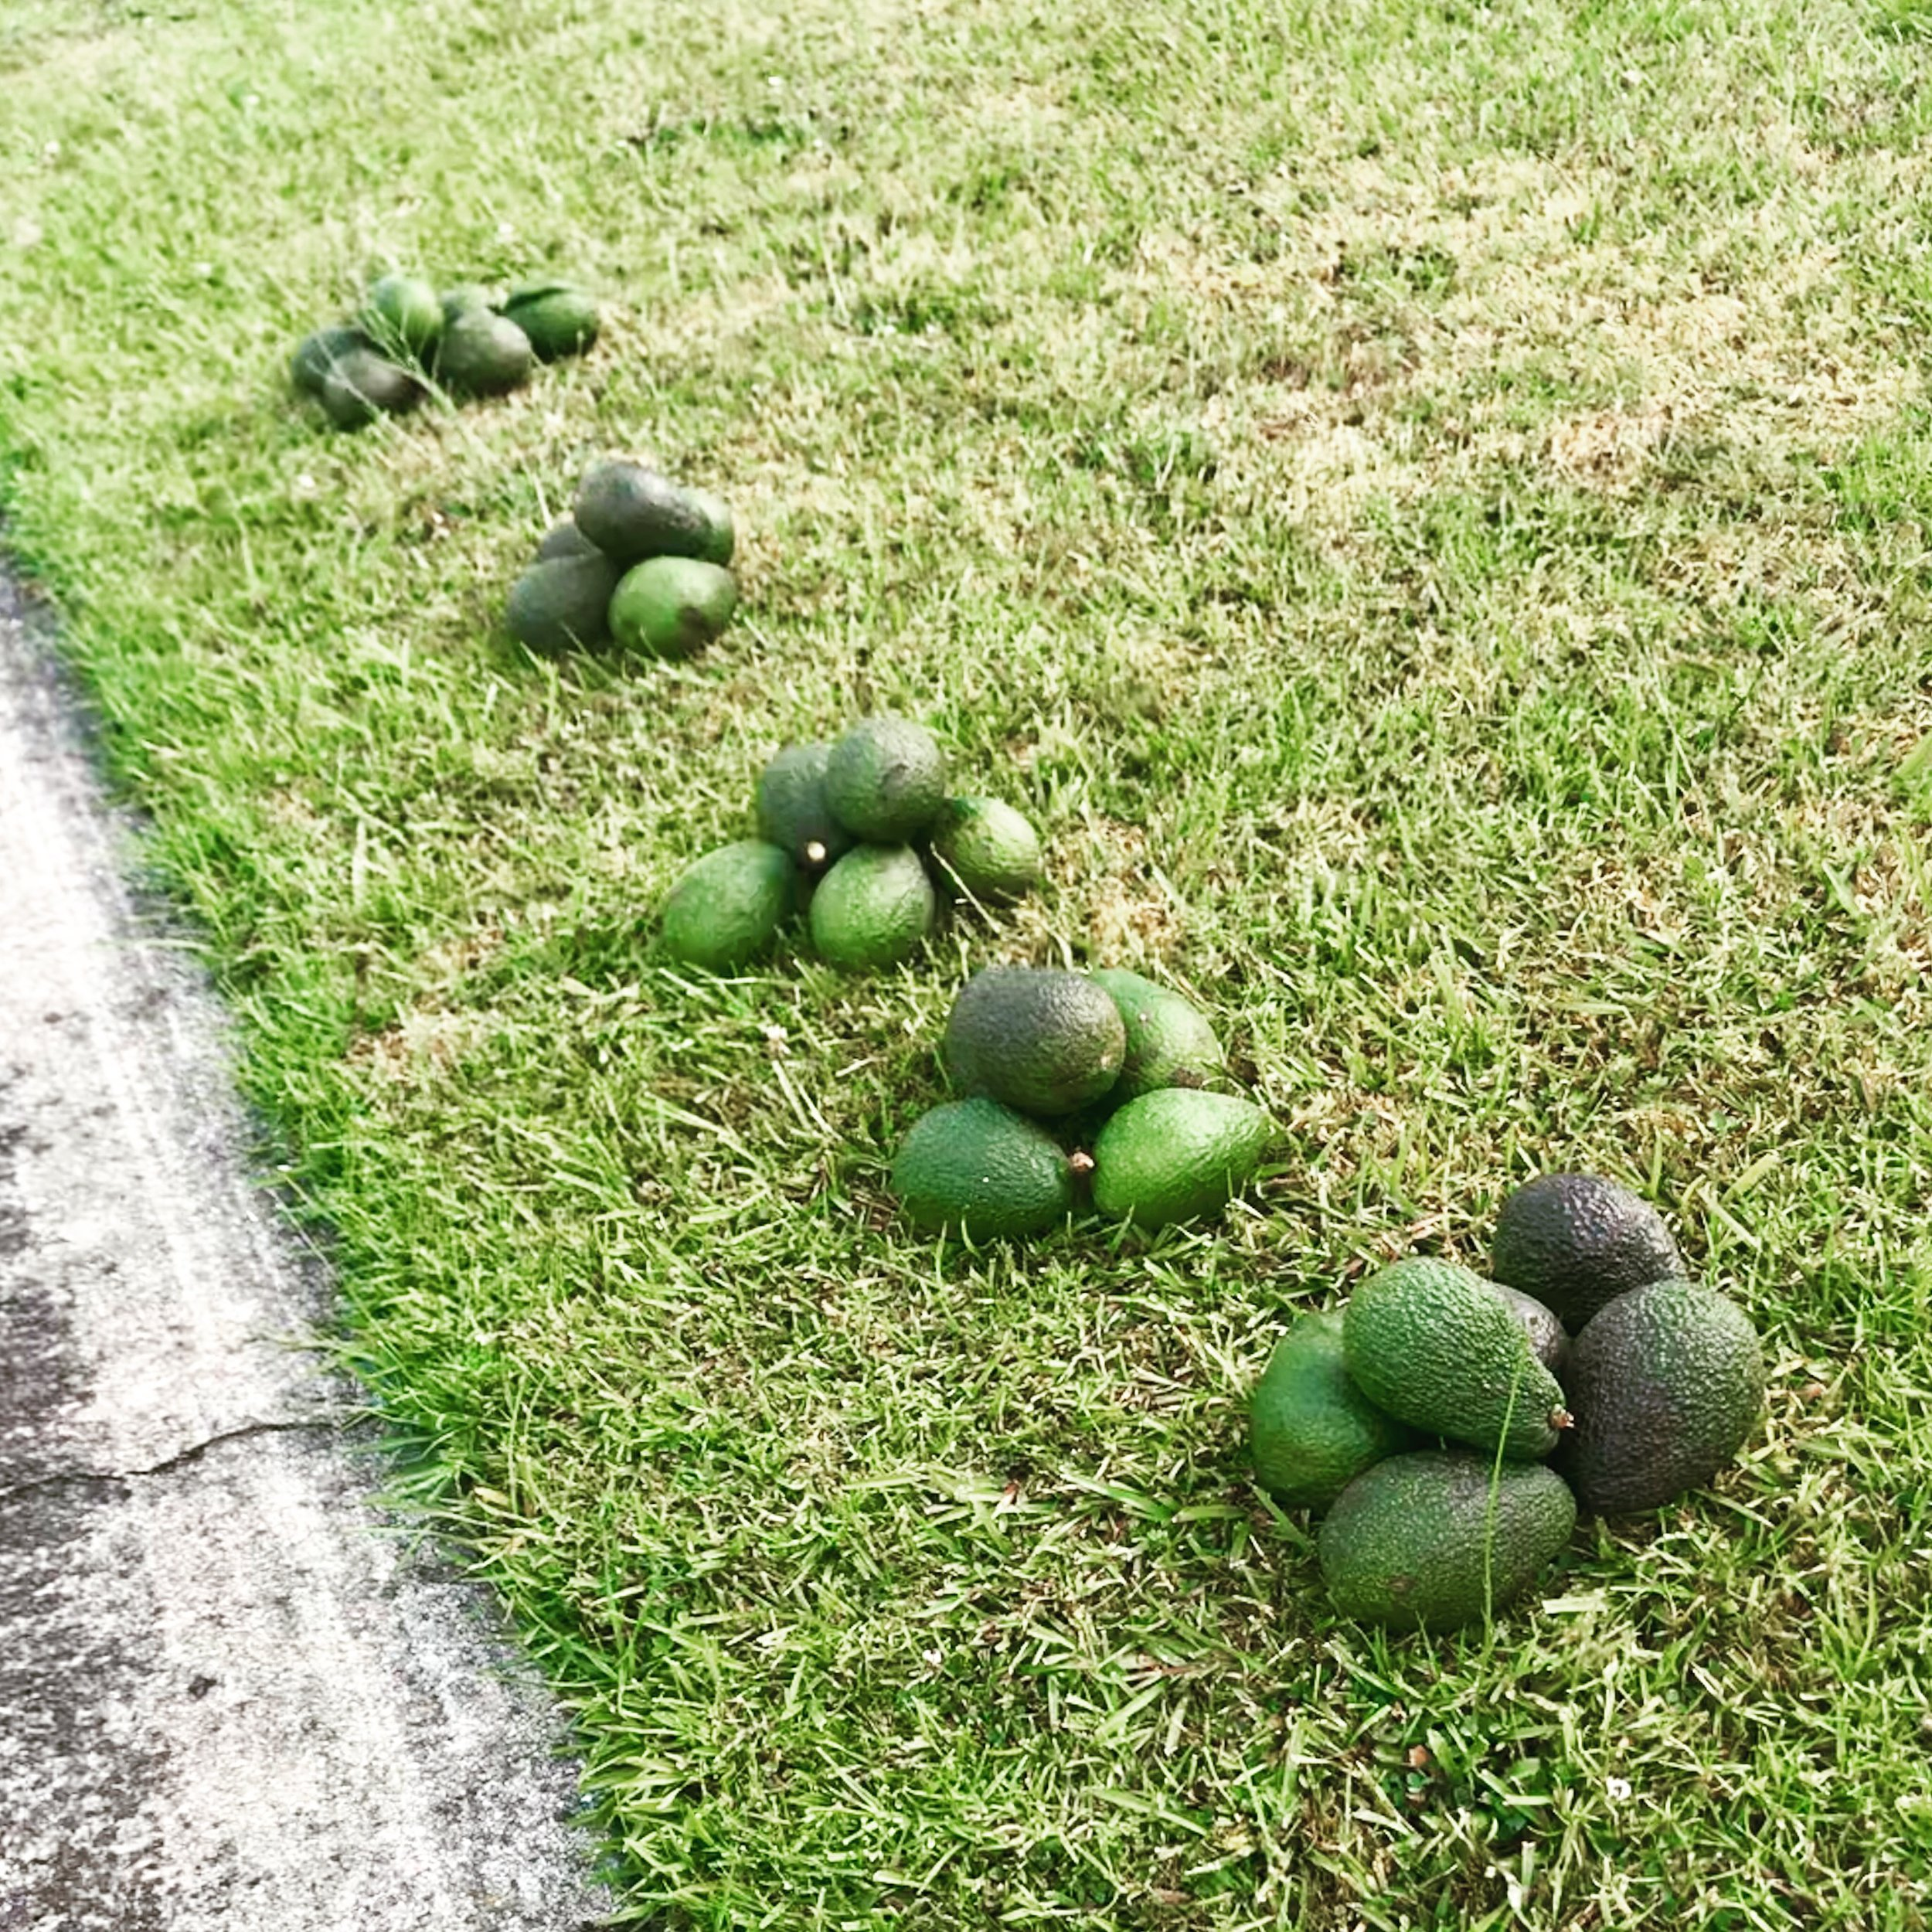 Free avocados on the verge, Africa style